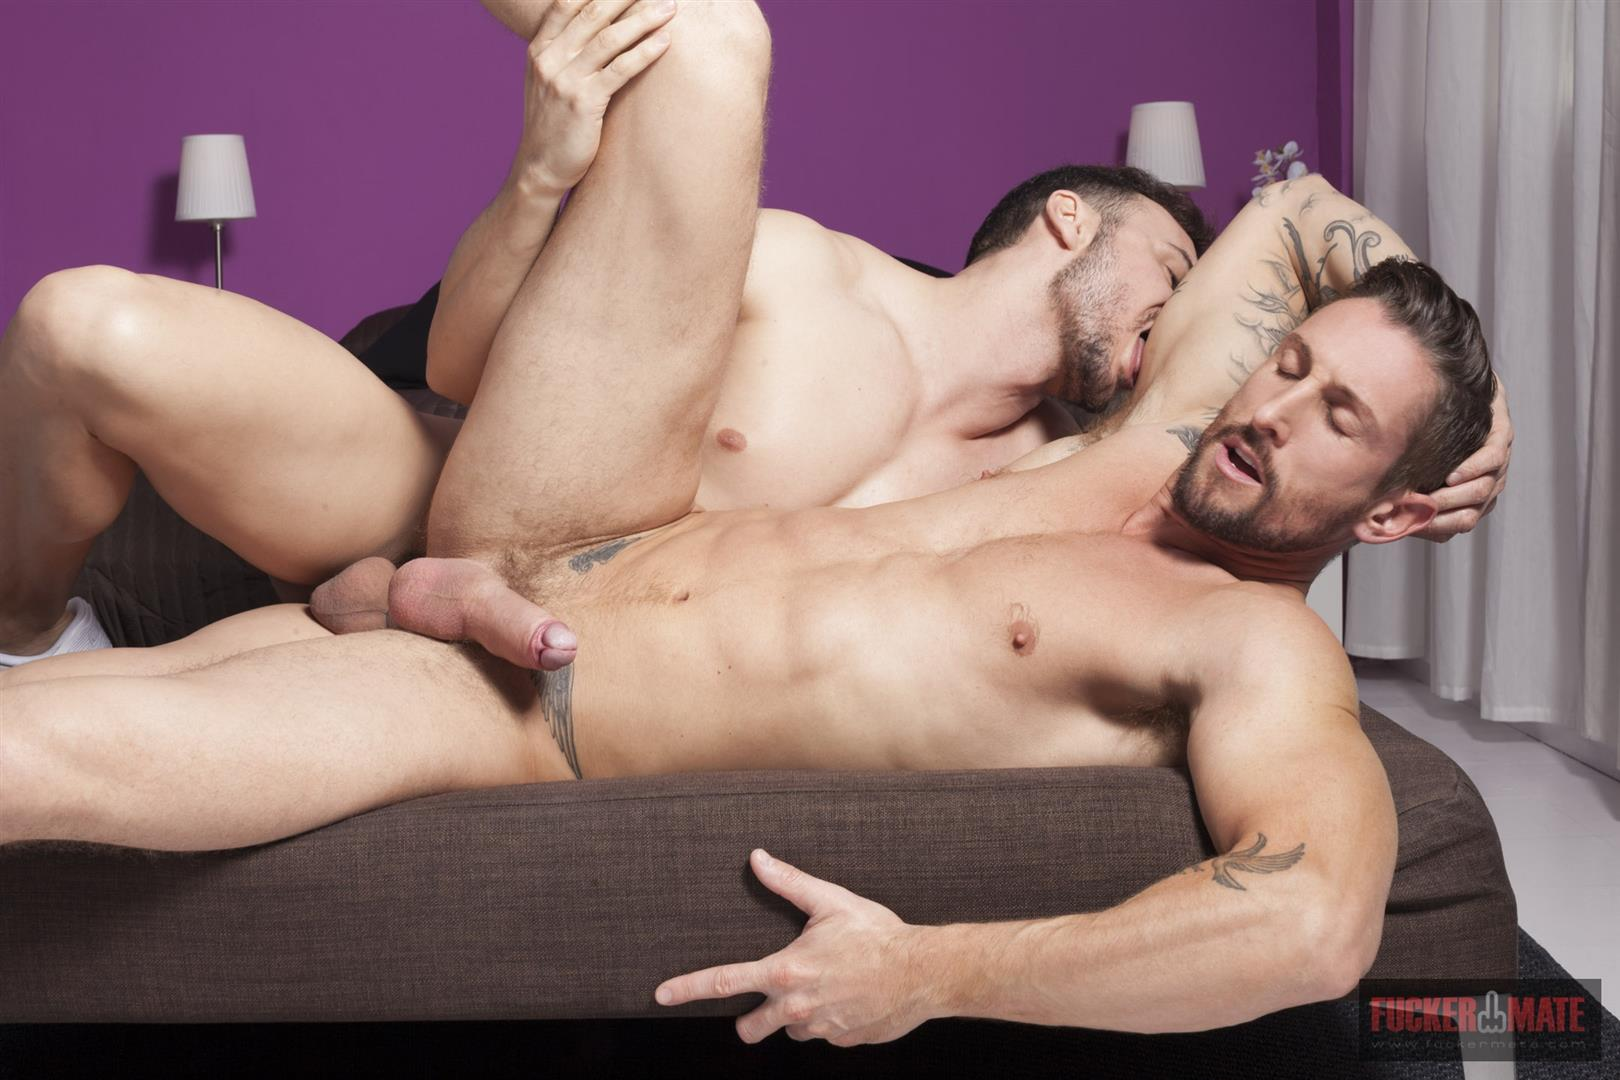 Fuckermate-Nick-North-and-Gabriel-Vanderloo-Muscle-Hunks-With-Big-Uncut-Cocks-Amateur-Gay-Porn-13 European Muscle Hunks Flip Flop Fucking With Their Big Uncut Cocks